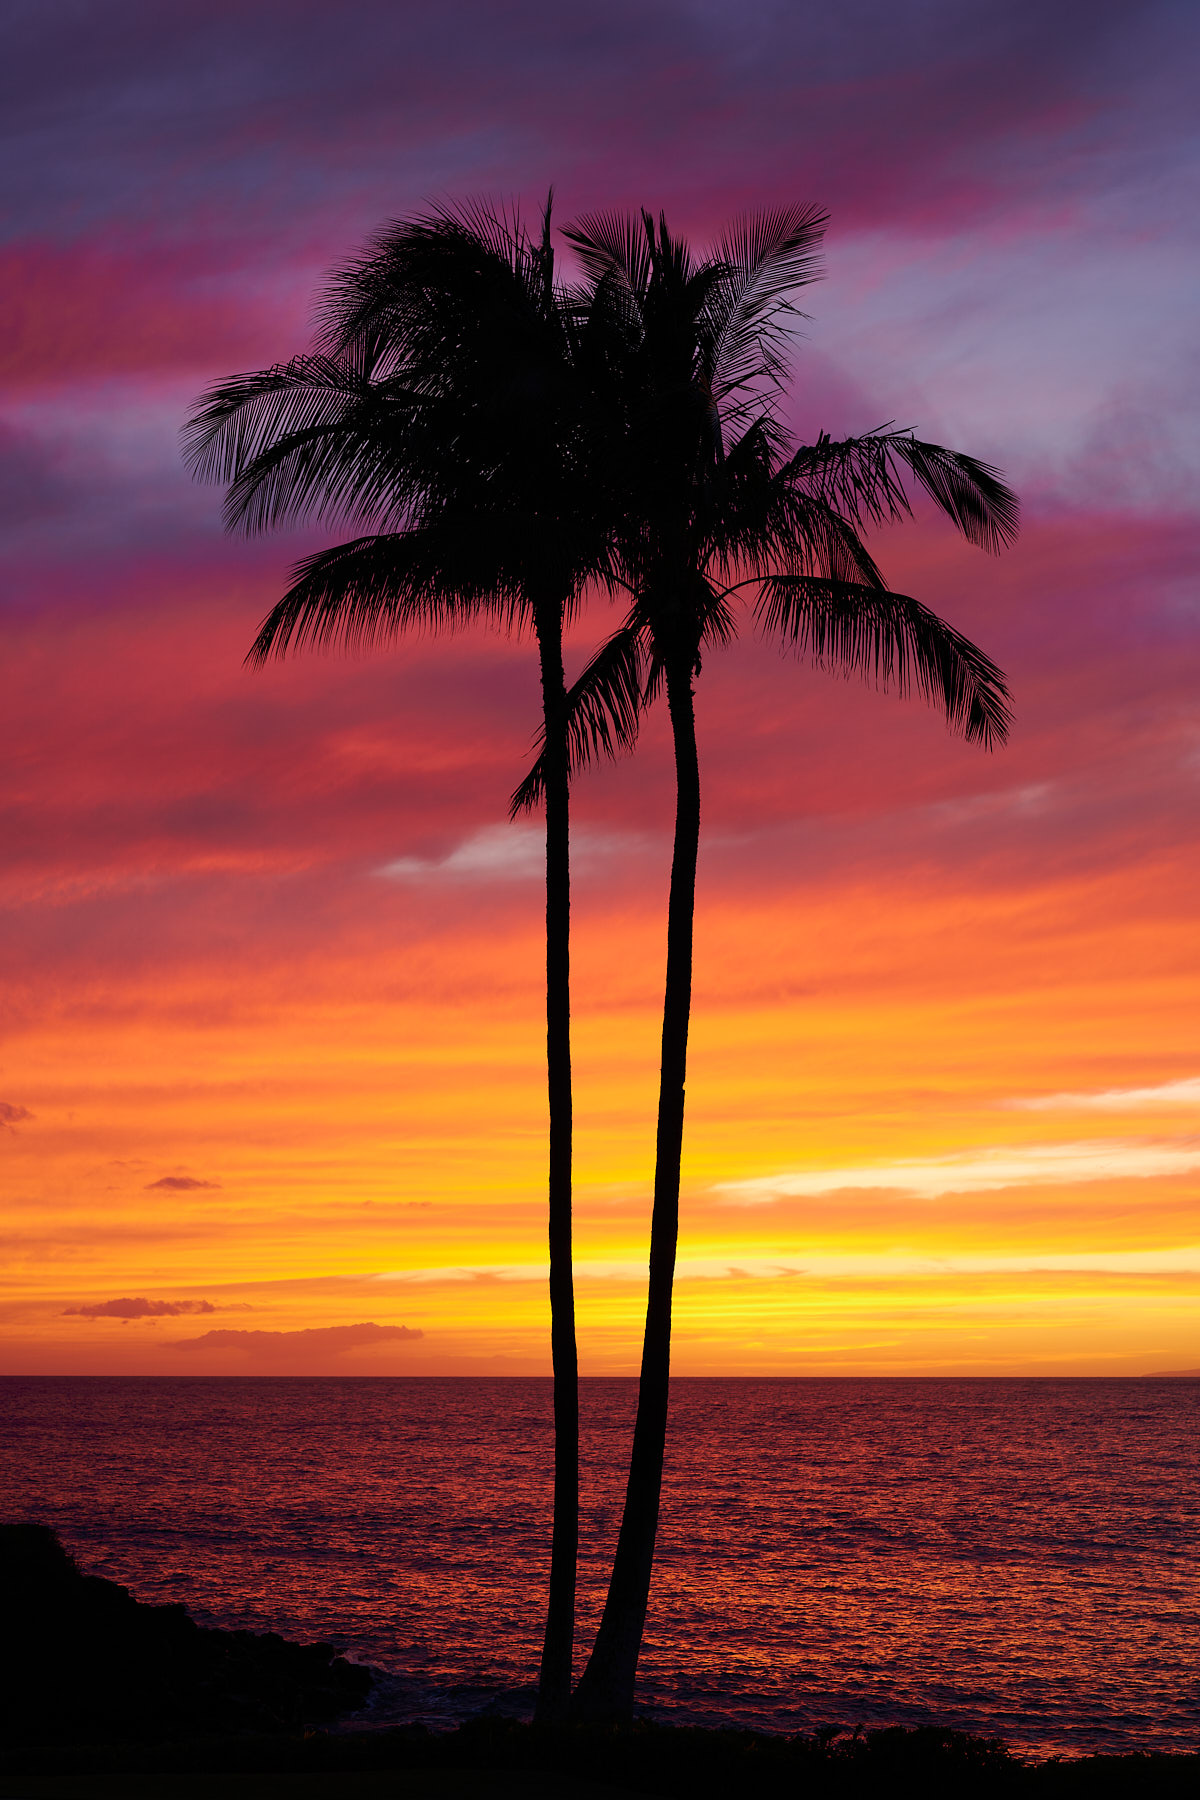 a fiery Hawaiian sunset captured with two twin palm tree silhouettes on the shores of Wailea, Maui